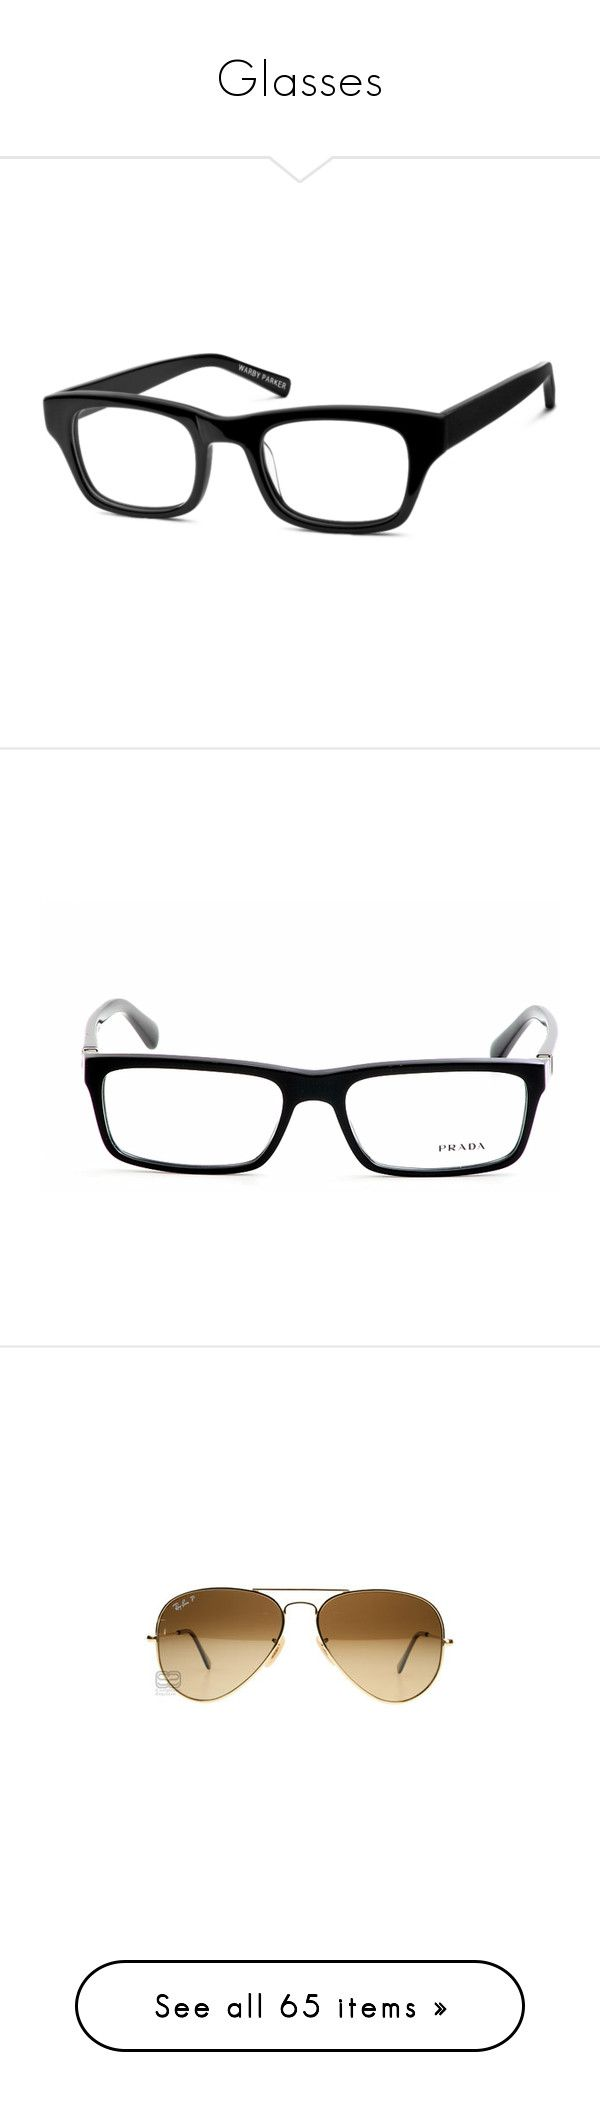 """Glasses"" by musicbeforelove ❤ liked on Polyvore featuring accessories, eyewear, eyeglasses, glasses, sunglasses, revolver black, superman glasses, warby parker eyeglasses, thick eyeglasses and warby parker eyewear"